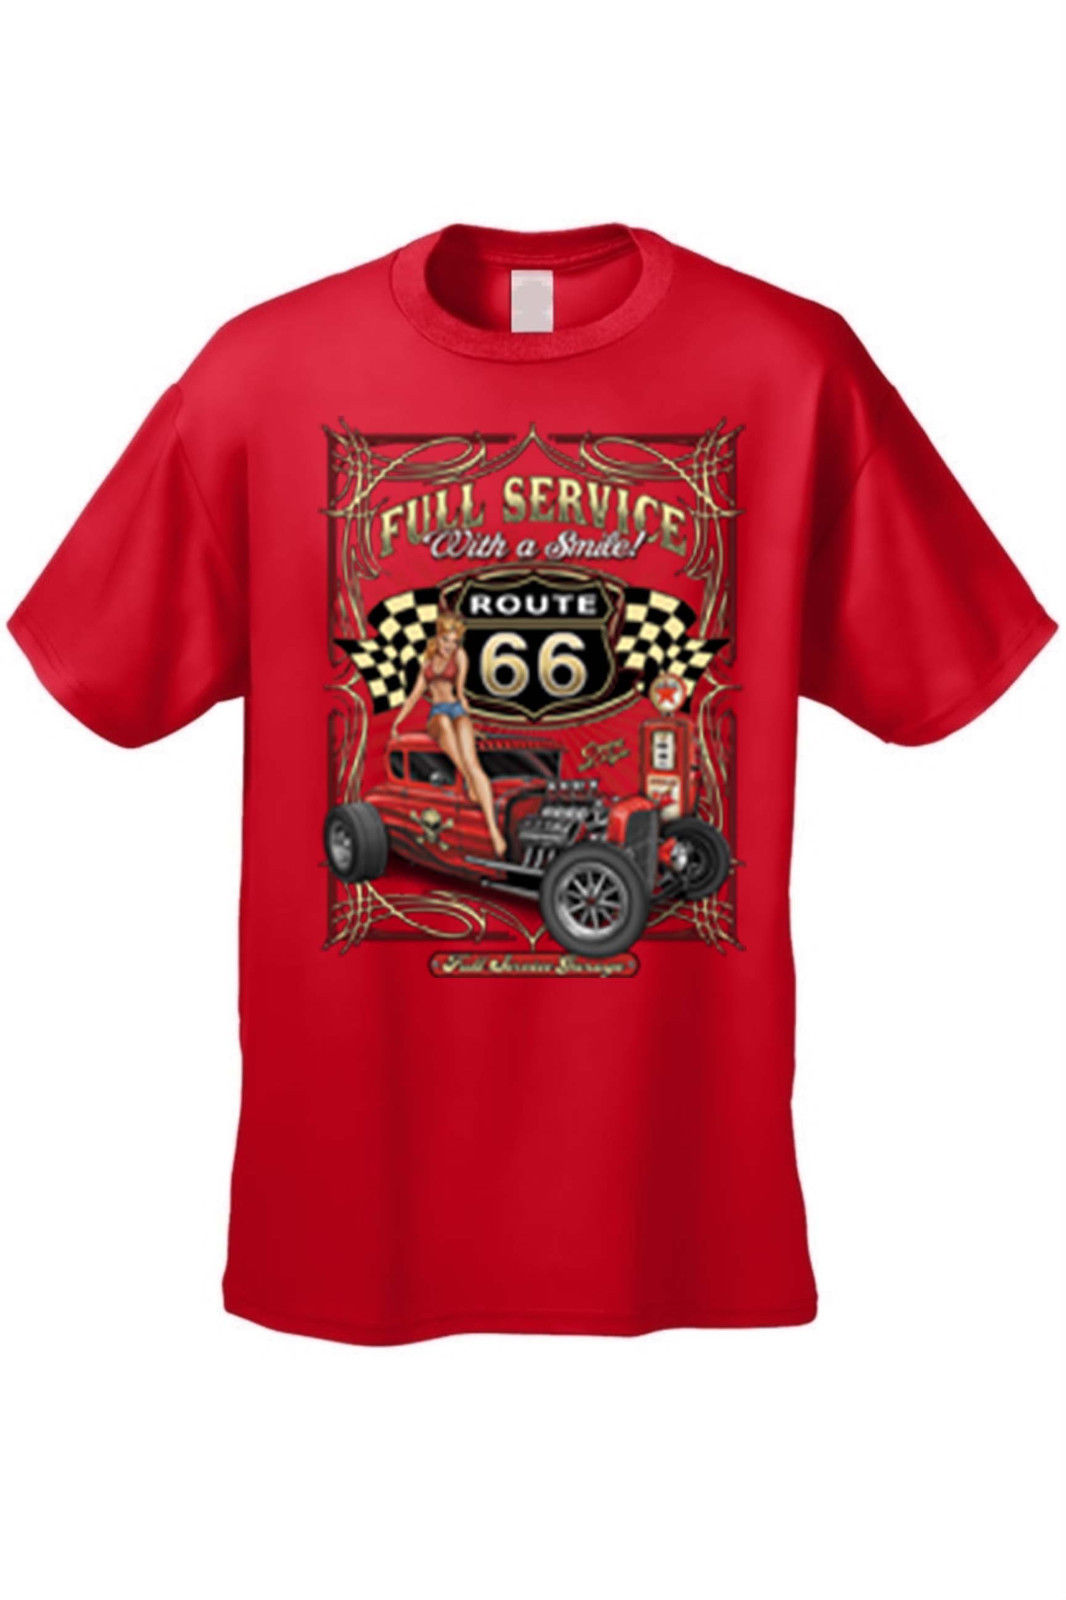 Men 39 s vintage auto t shirt full service with a smile route for Warson motors t shirt